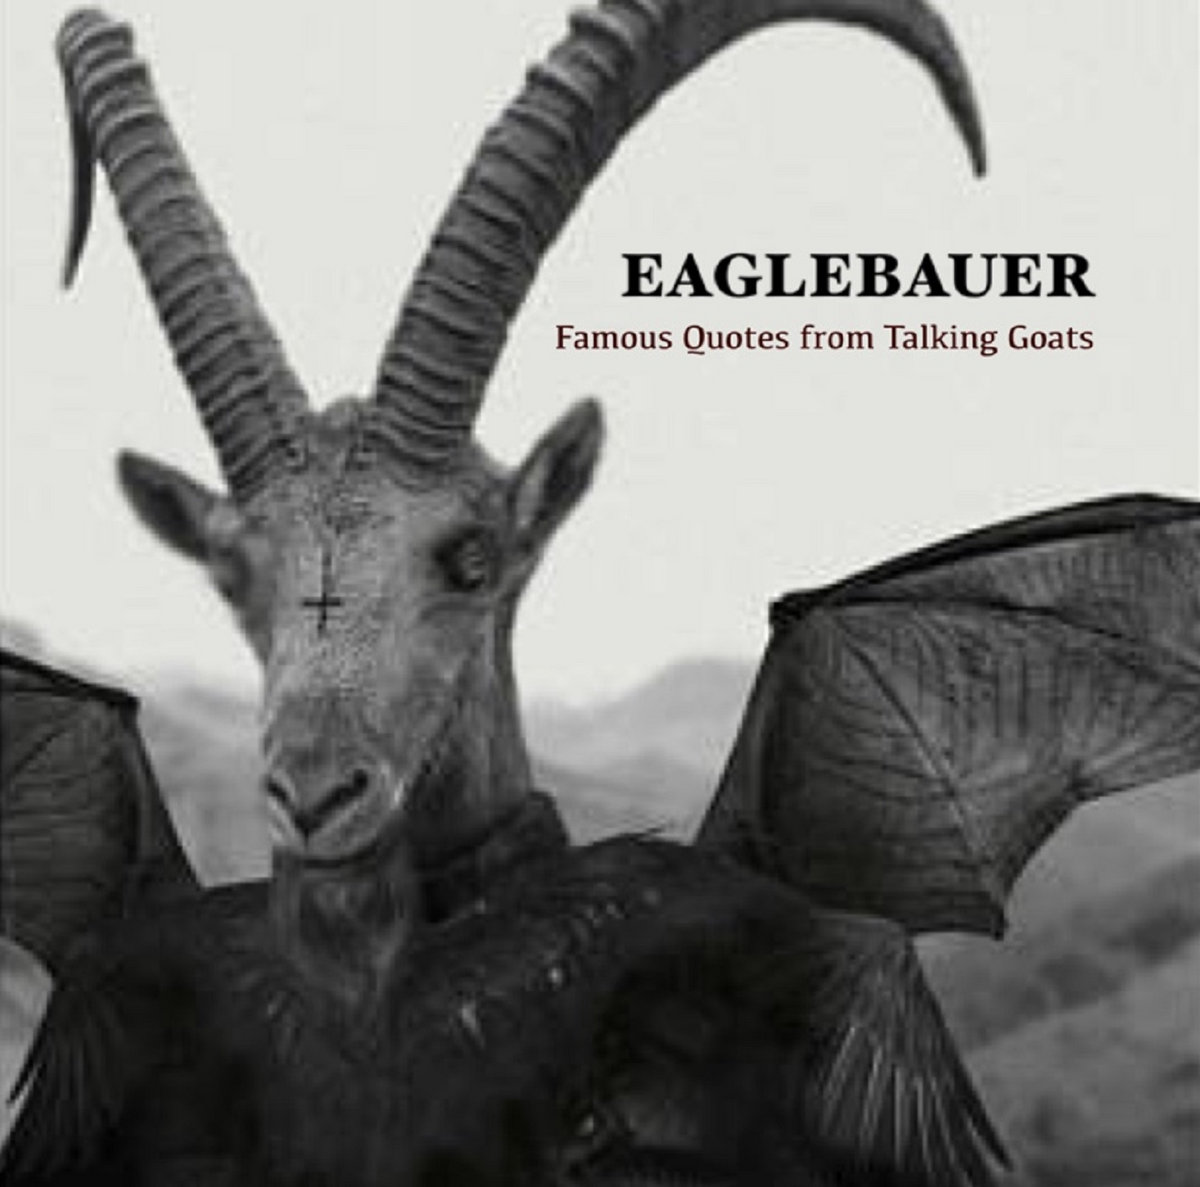 Famous Quotes from Talking Goats | Eaglebauer